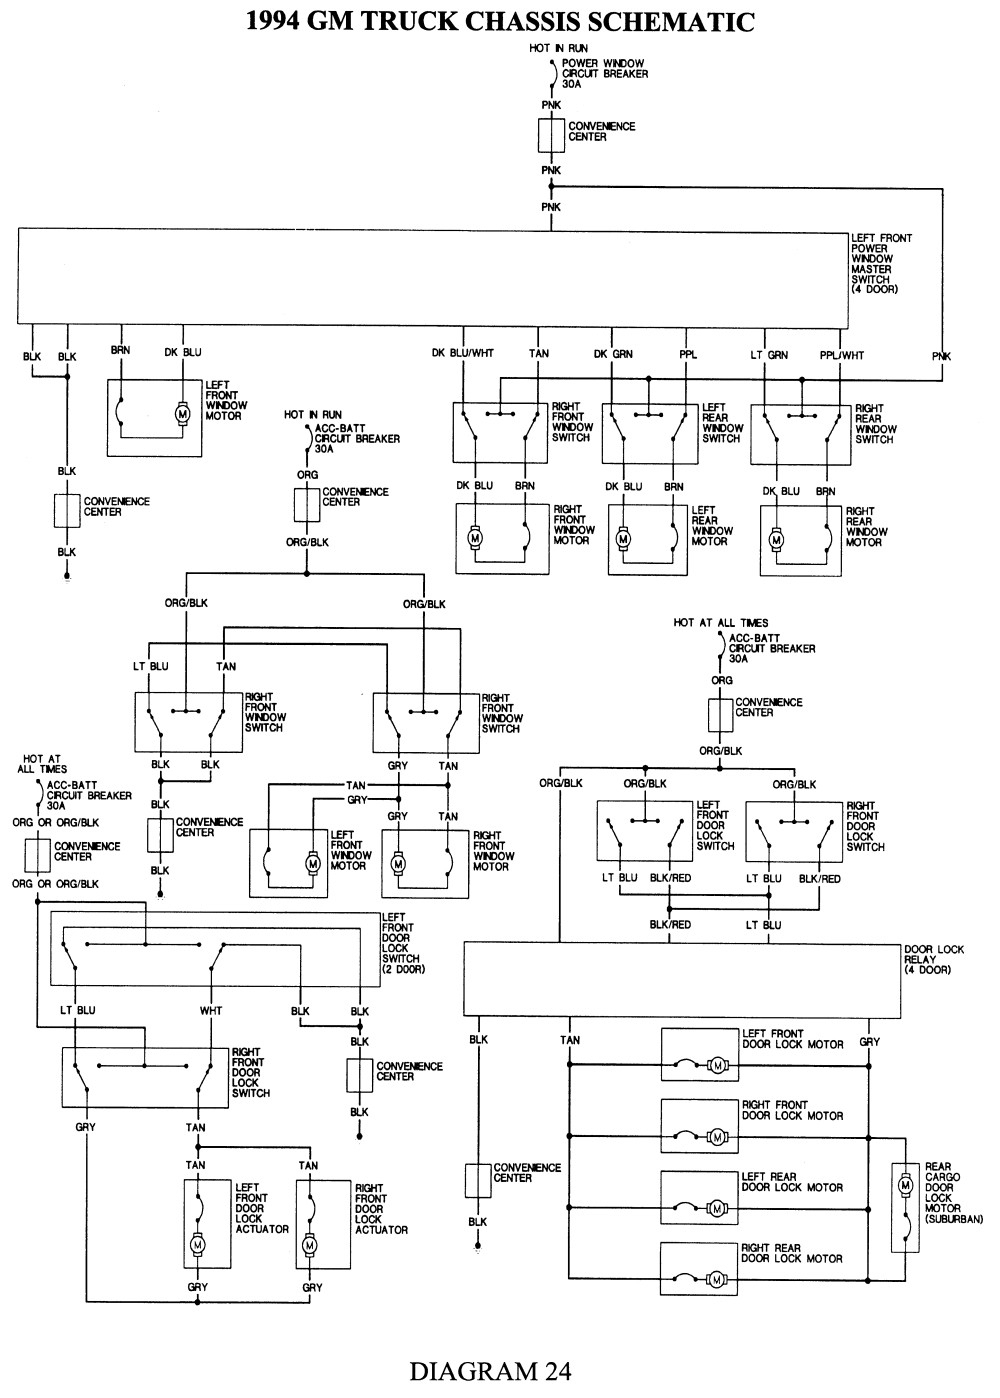 Images 2001 Chevy Suburban Radio Wiring Diagram 9 2002 Trailblazer - Chevy Radio Wiring Diagram